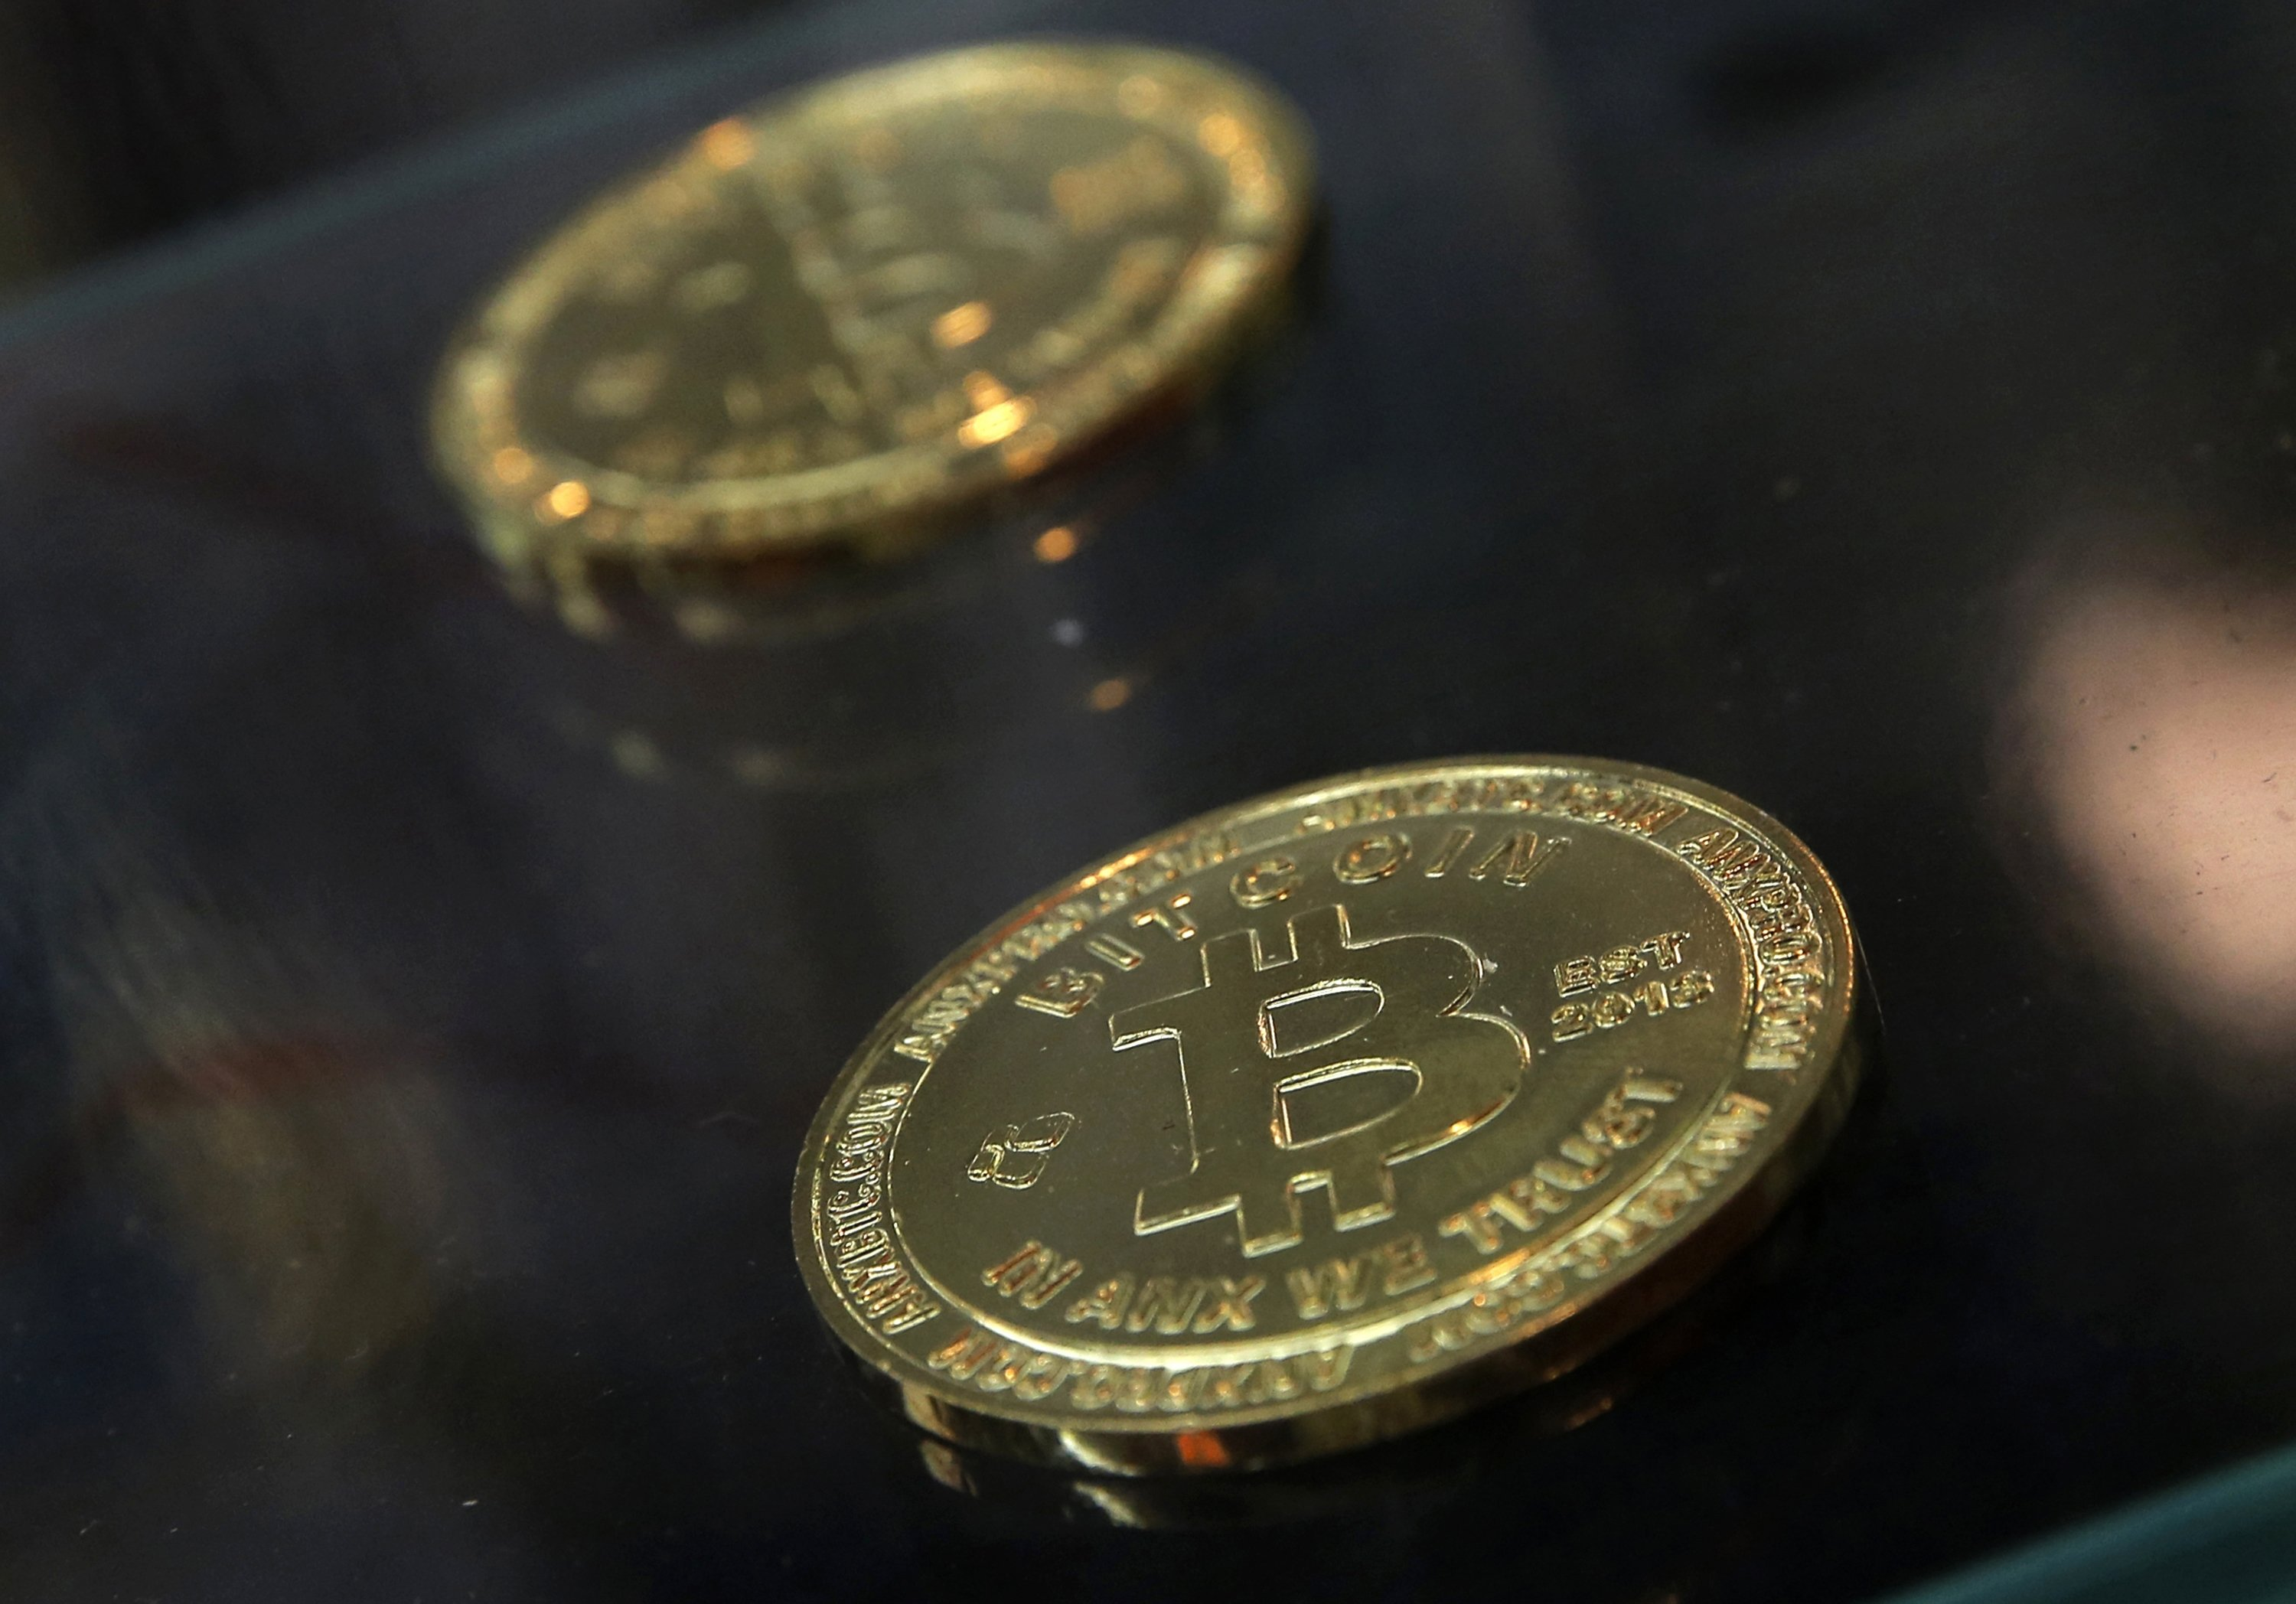 Bitcoin passes $30K mark for first time thumbnail